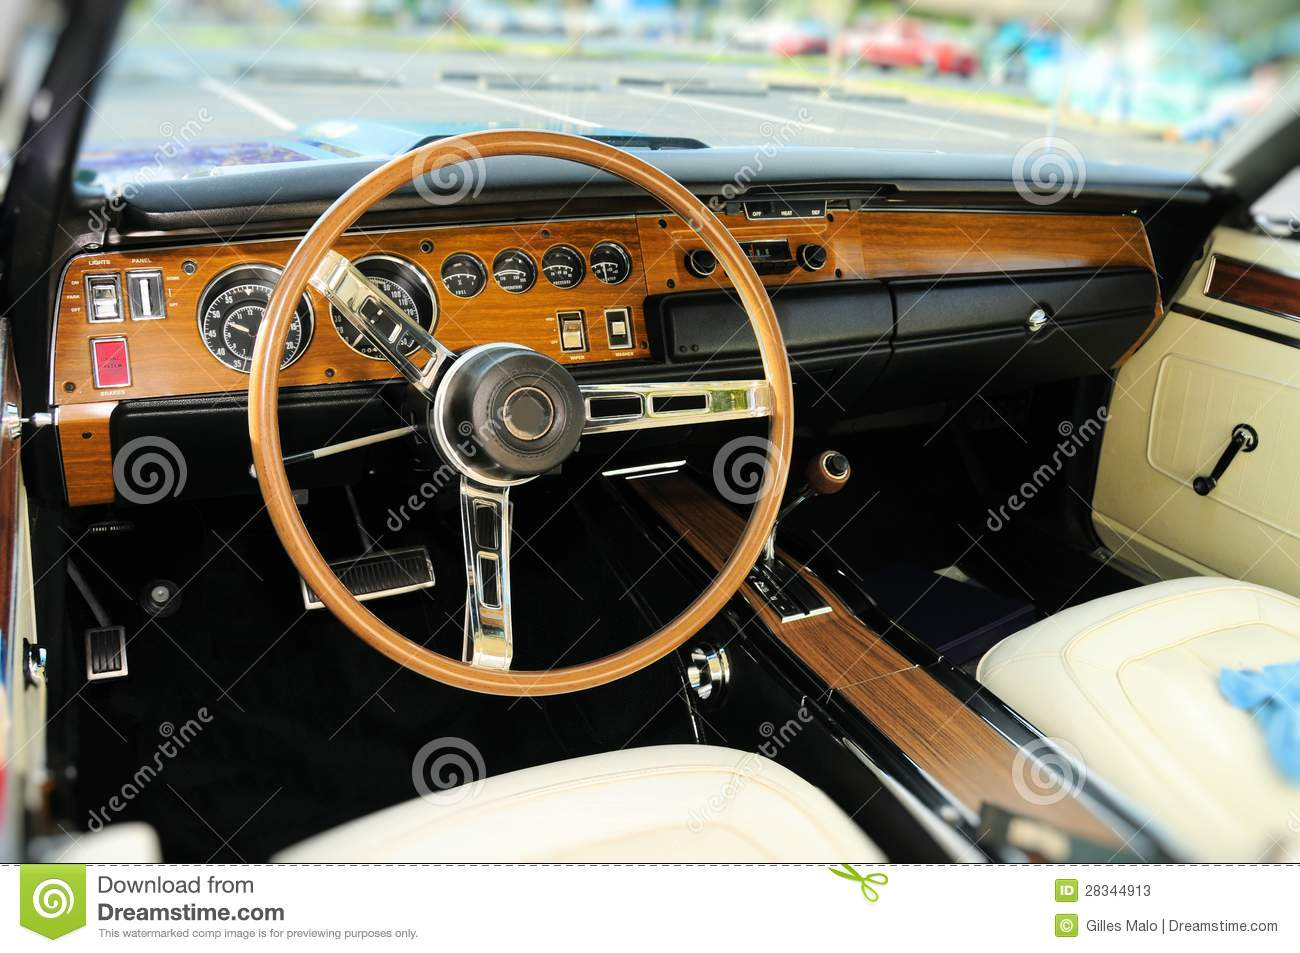 sports car interior in swede leather stock image 26033413. Black Bedroom Furniture Sets. Home Design Ideas